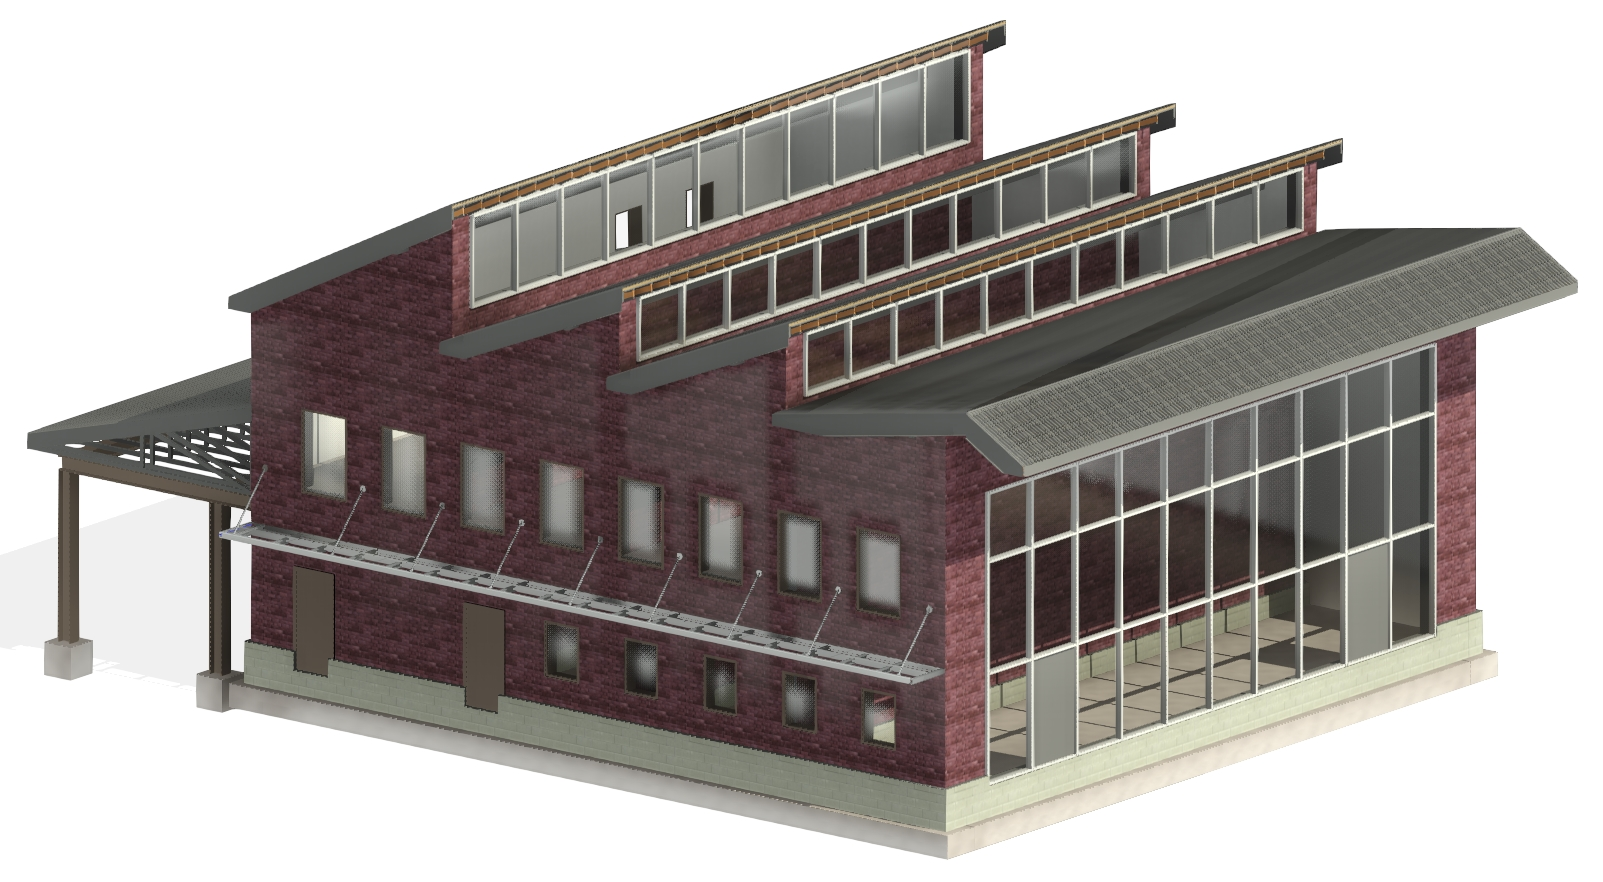 rafter and truss systems for framing in Autodesk Revit using AGACAD Roof Framing BIM tools